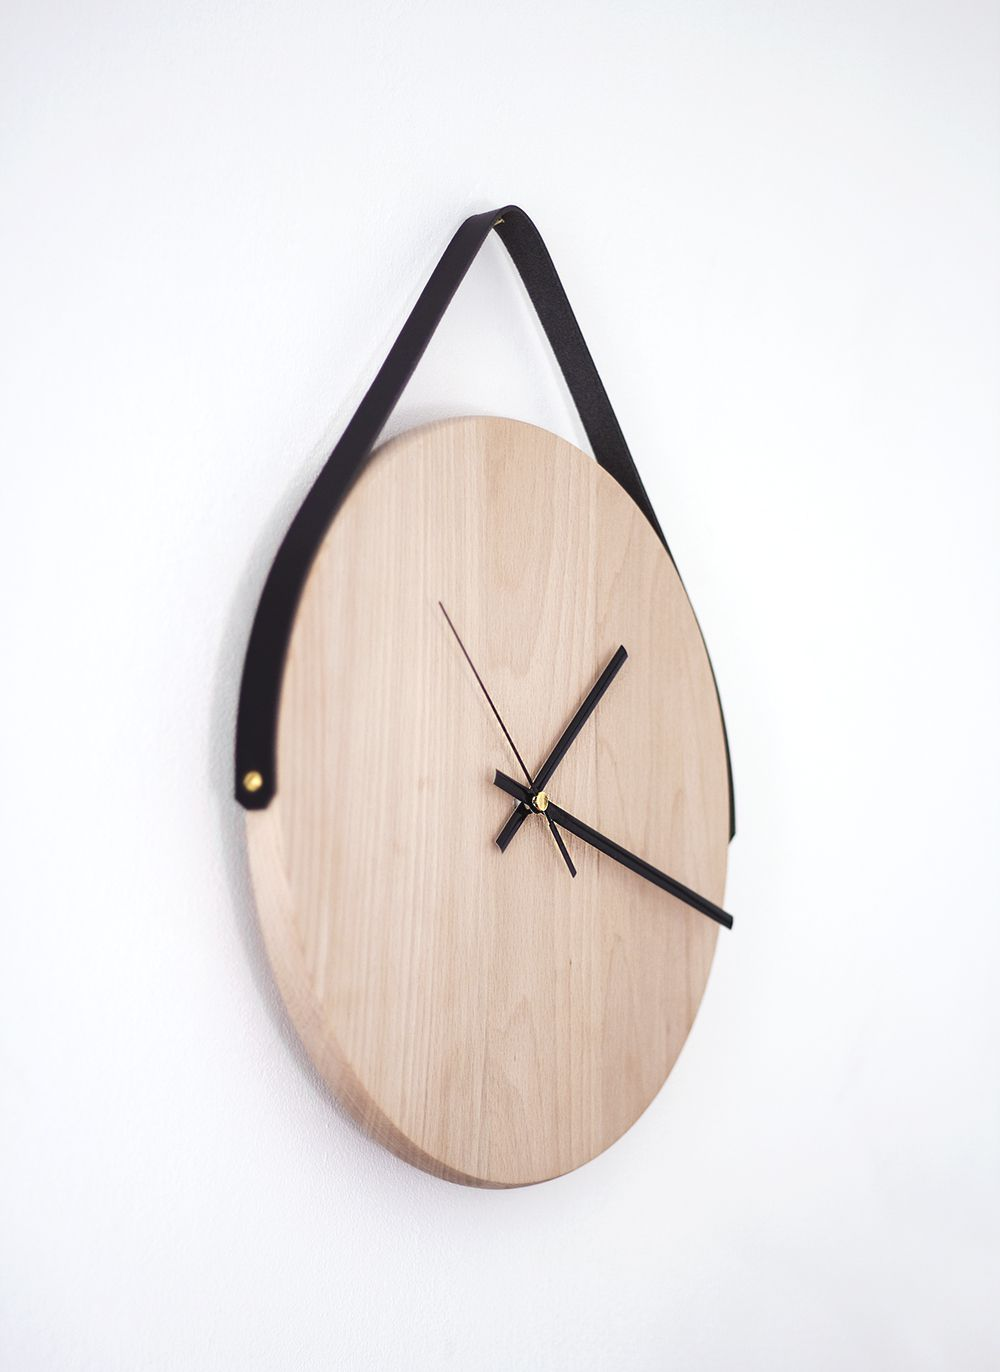 recycling wood decor wooden home clock house original